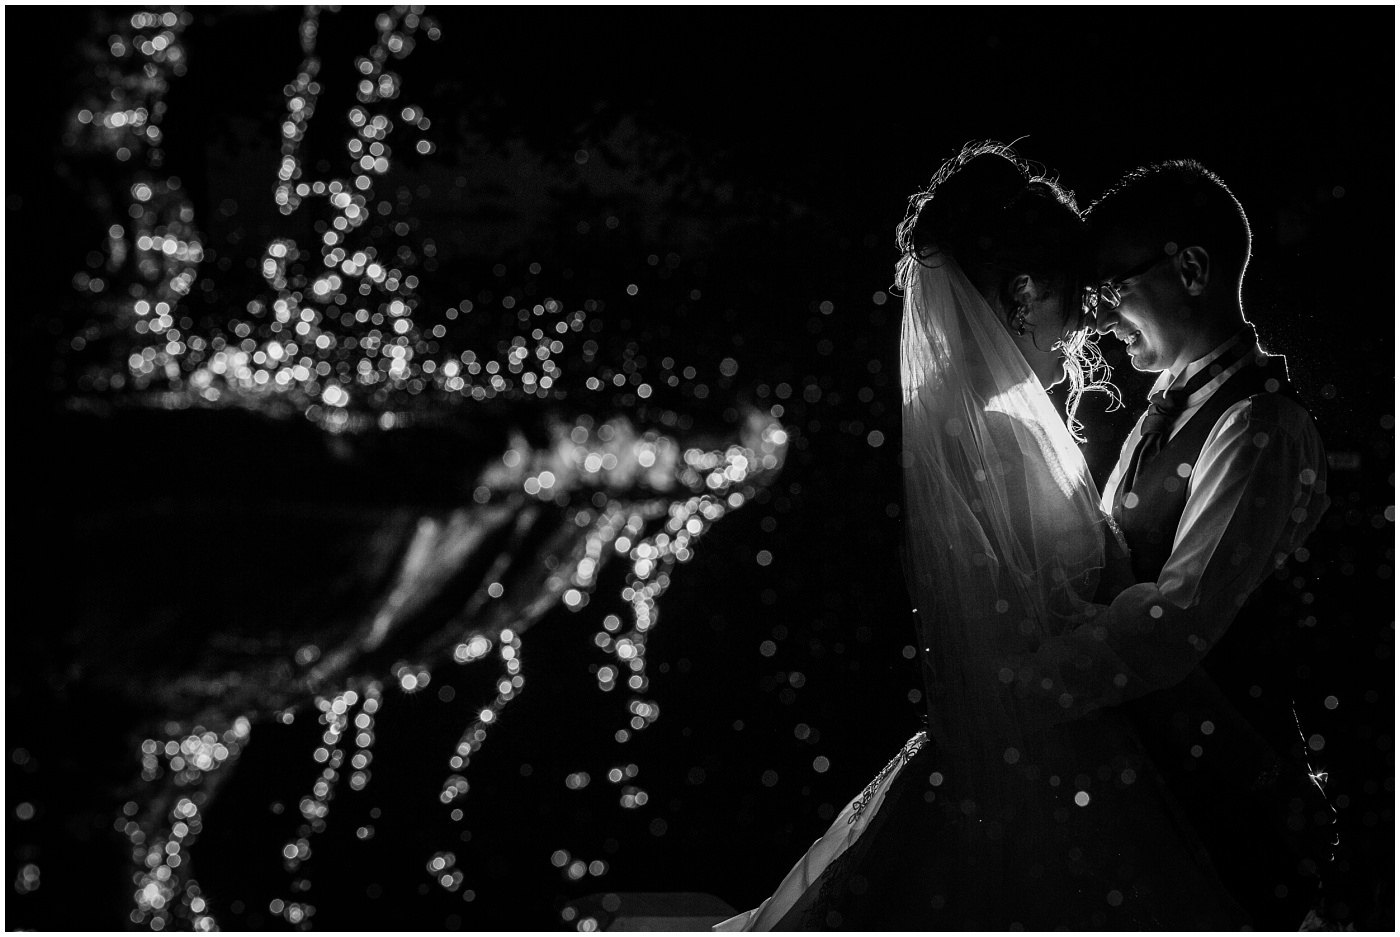 bride and groom in black and white share a moment by a fountain